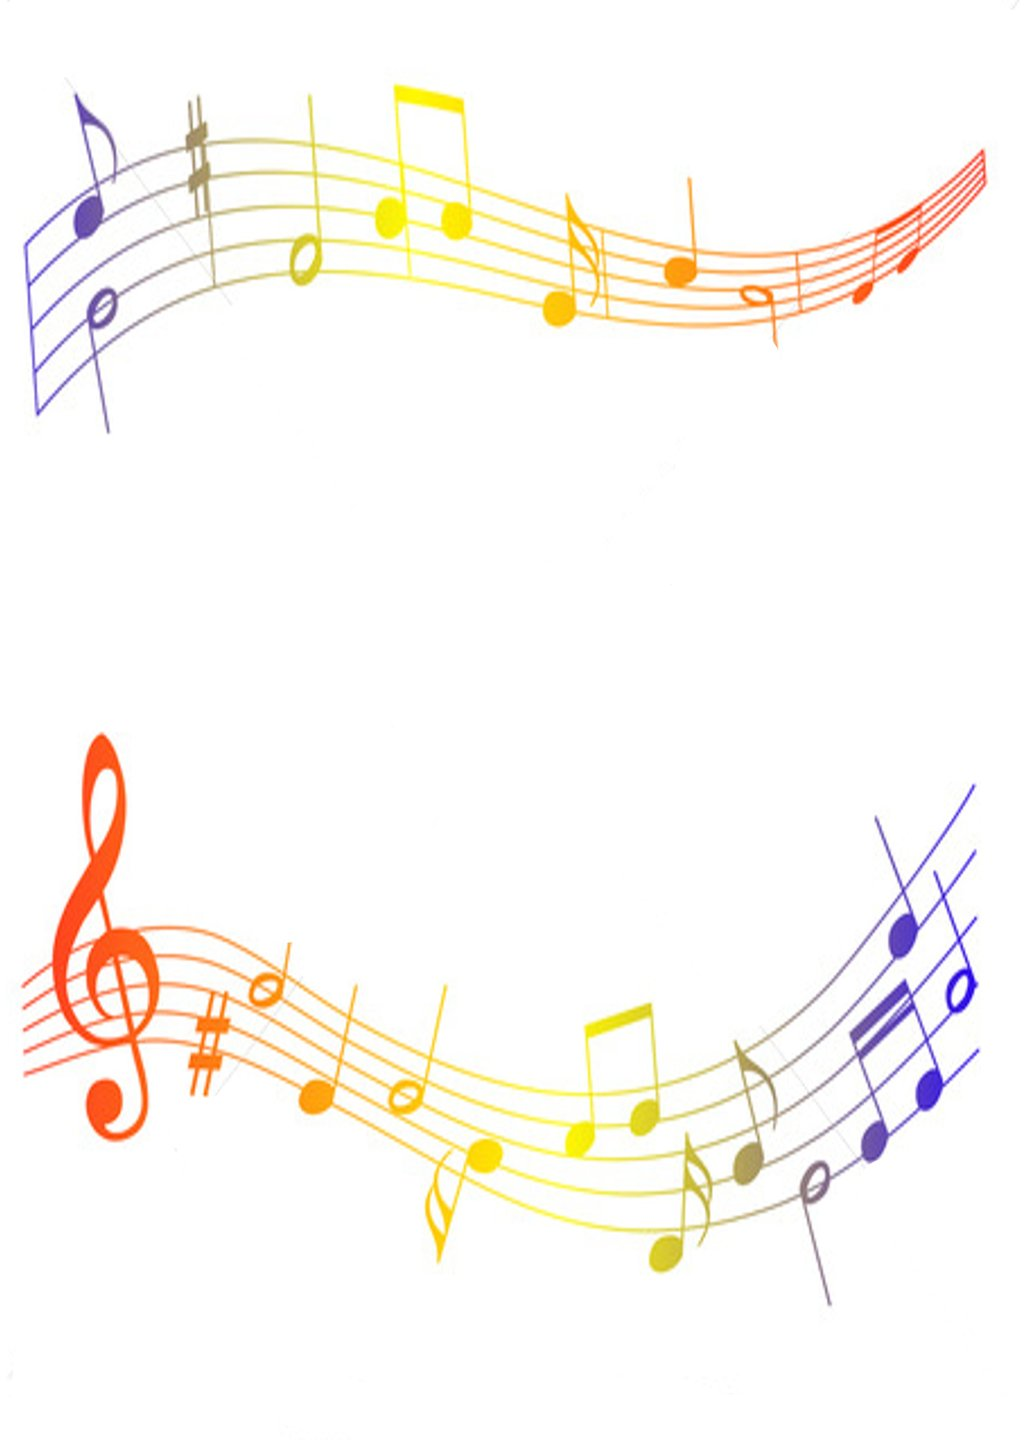 Coloured Musical Notes Borderkirstylouisewilson On Deviantart